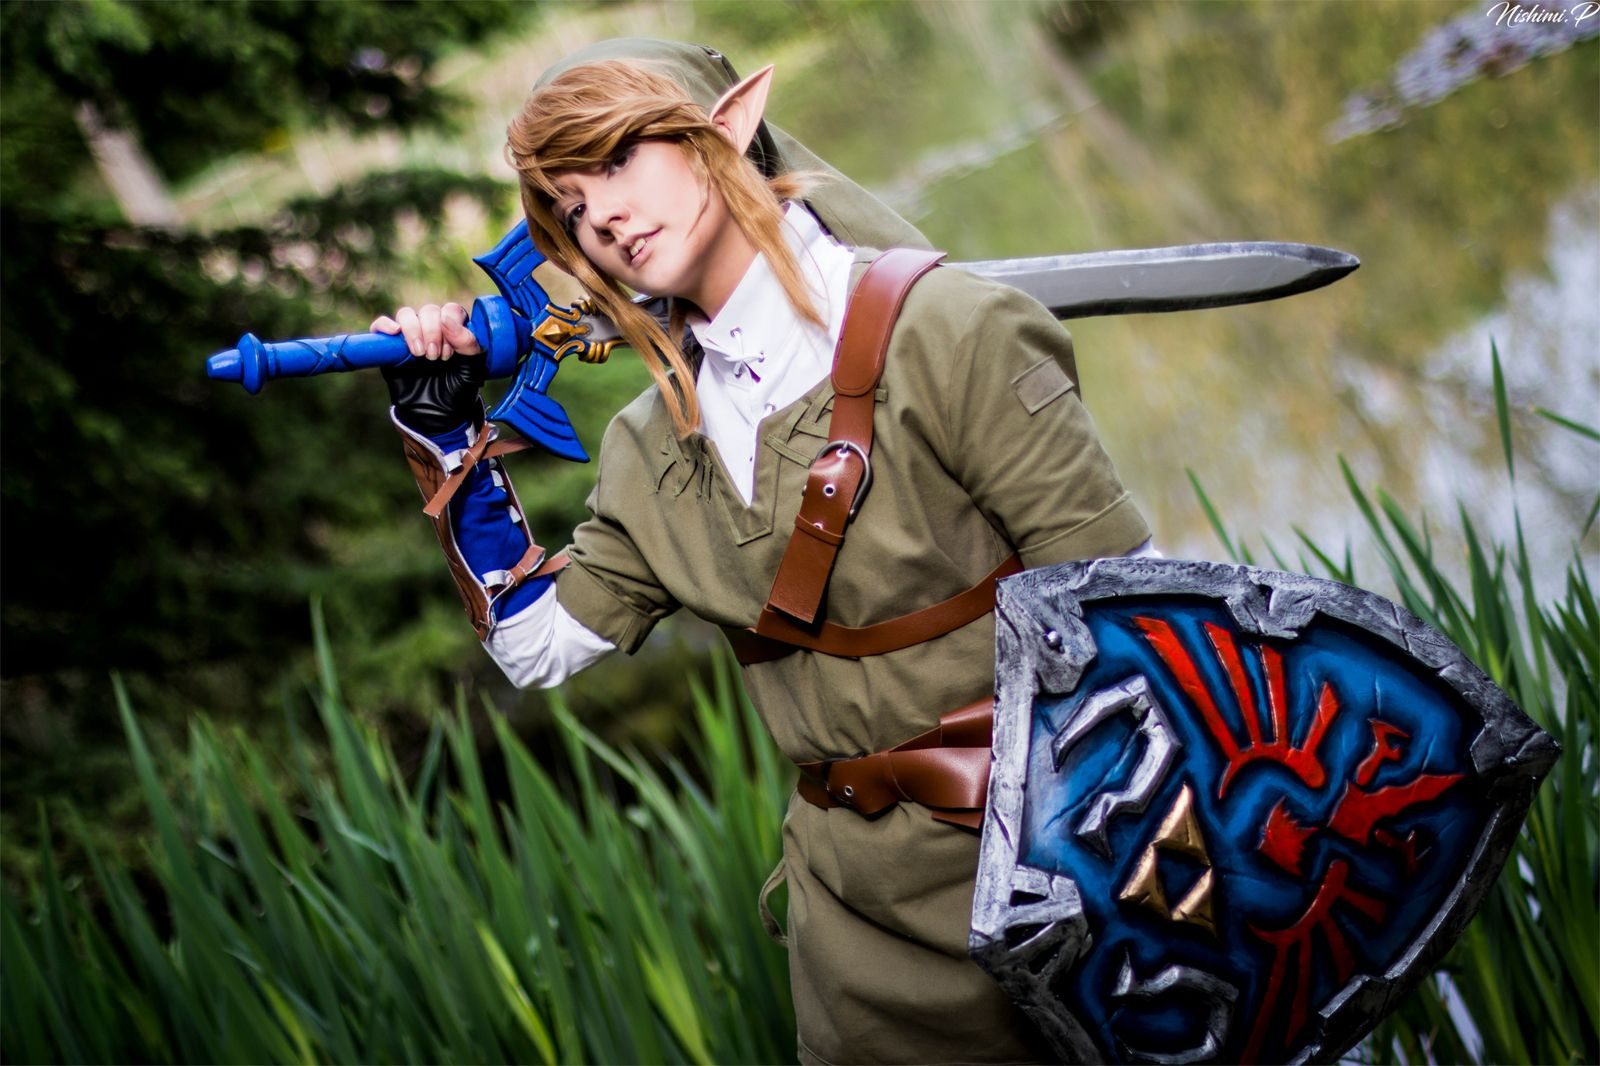 Parle-moi Cosplay #463 : Ikaï Cosplay